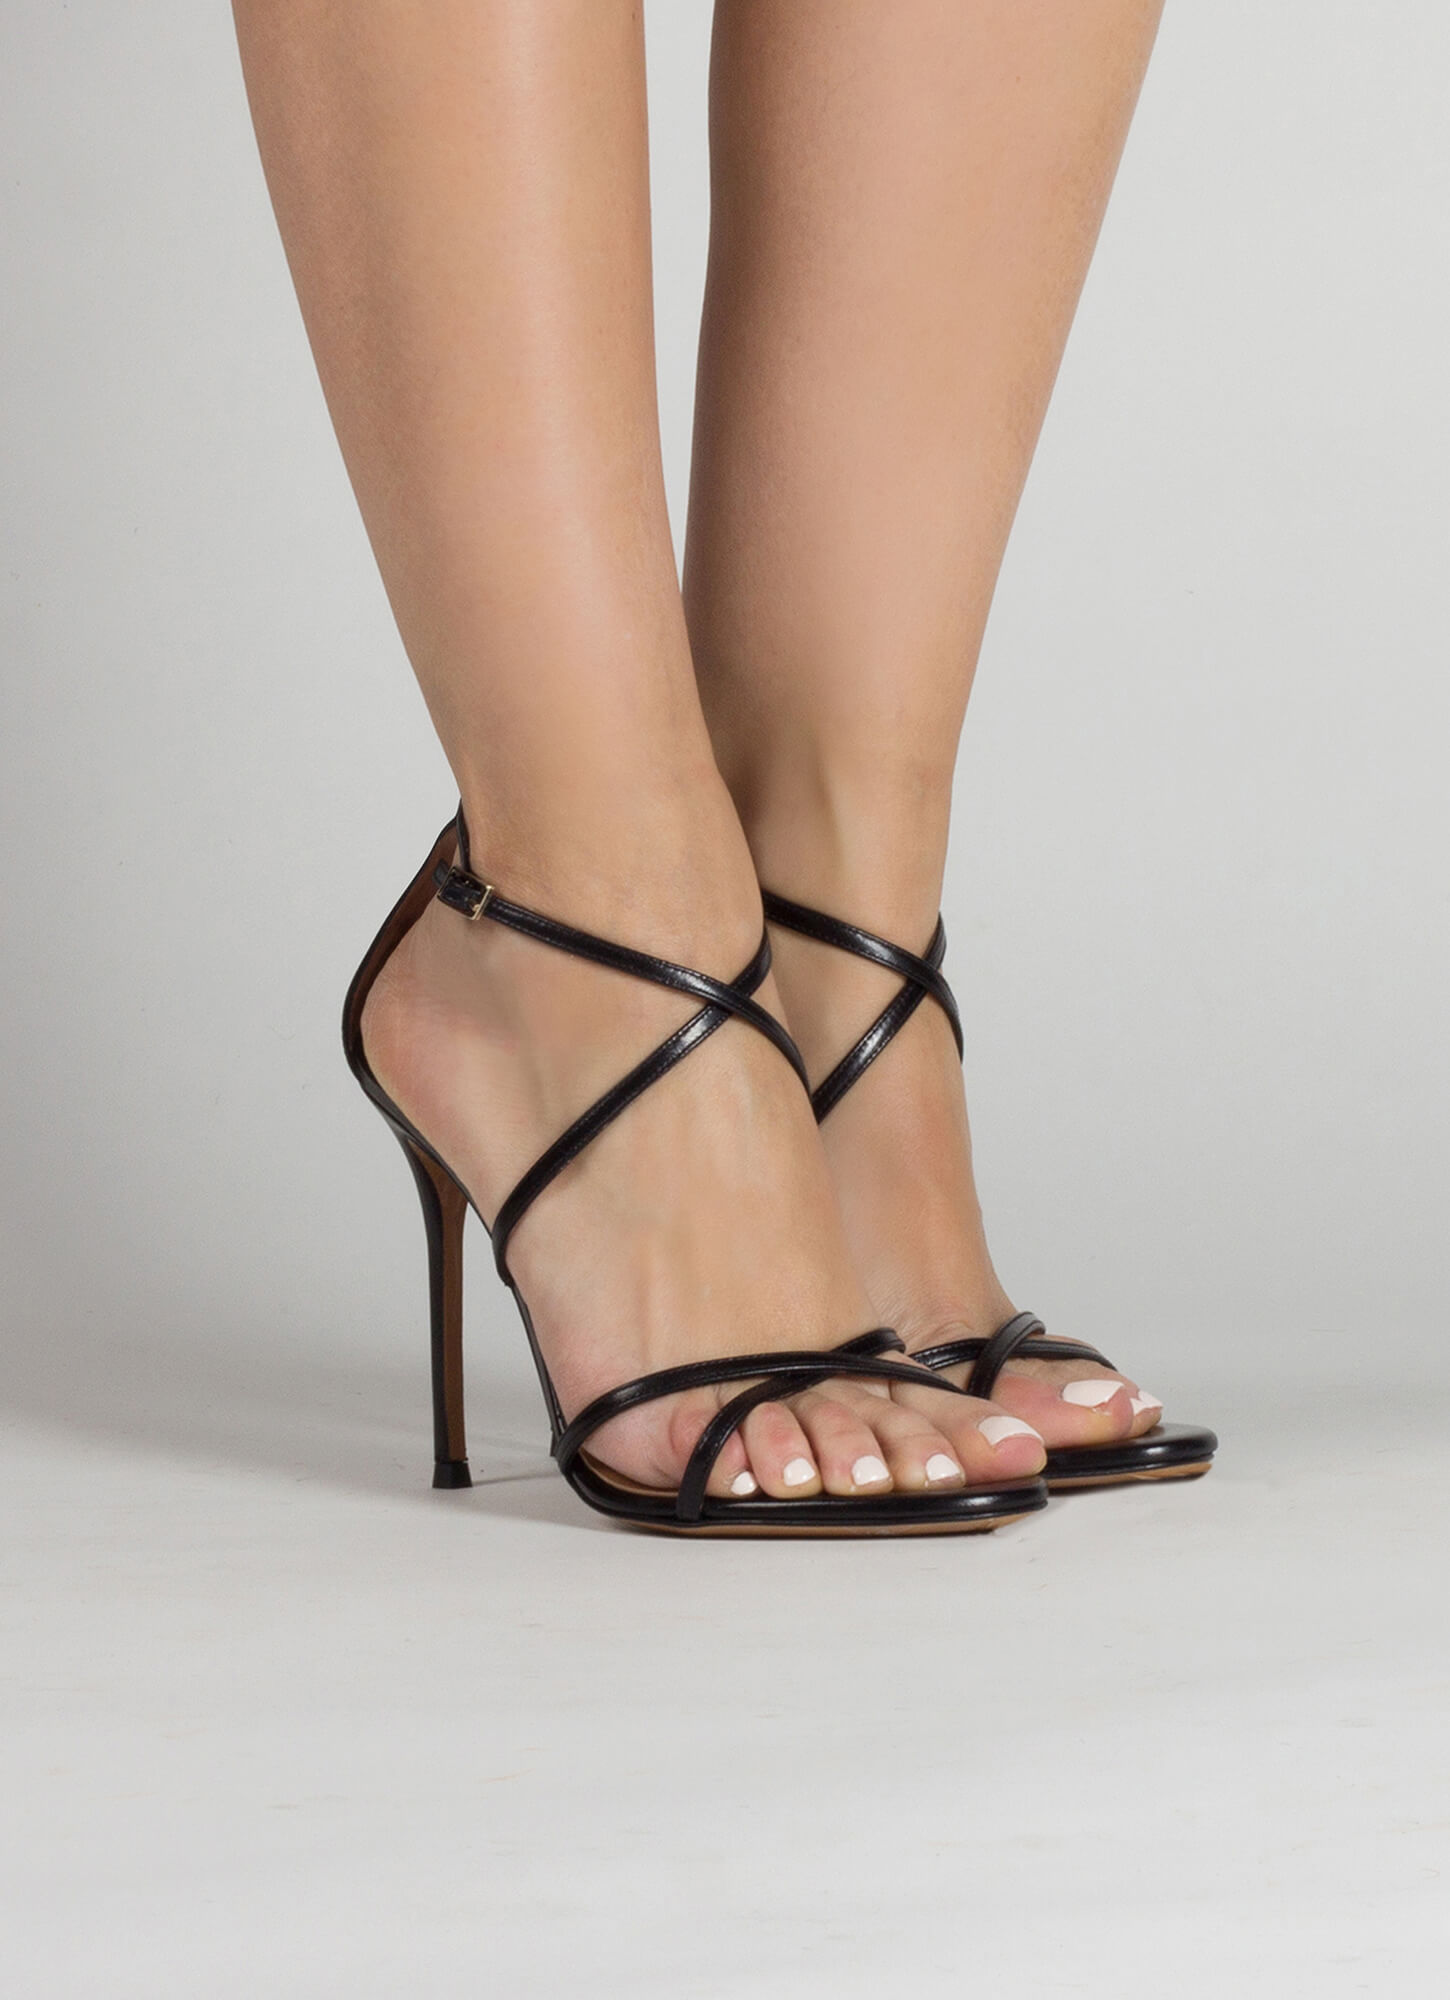 66e1a11351 High heel sandals with crossed straps in black leather · Oria Pura López